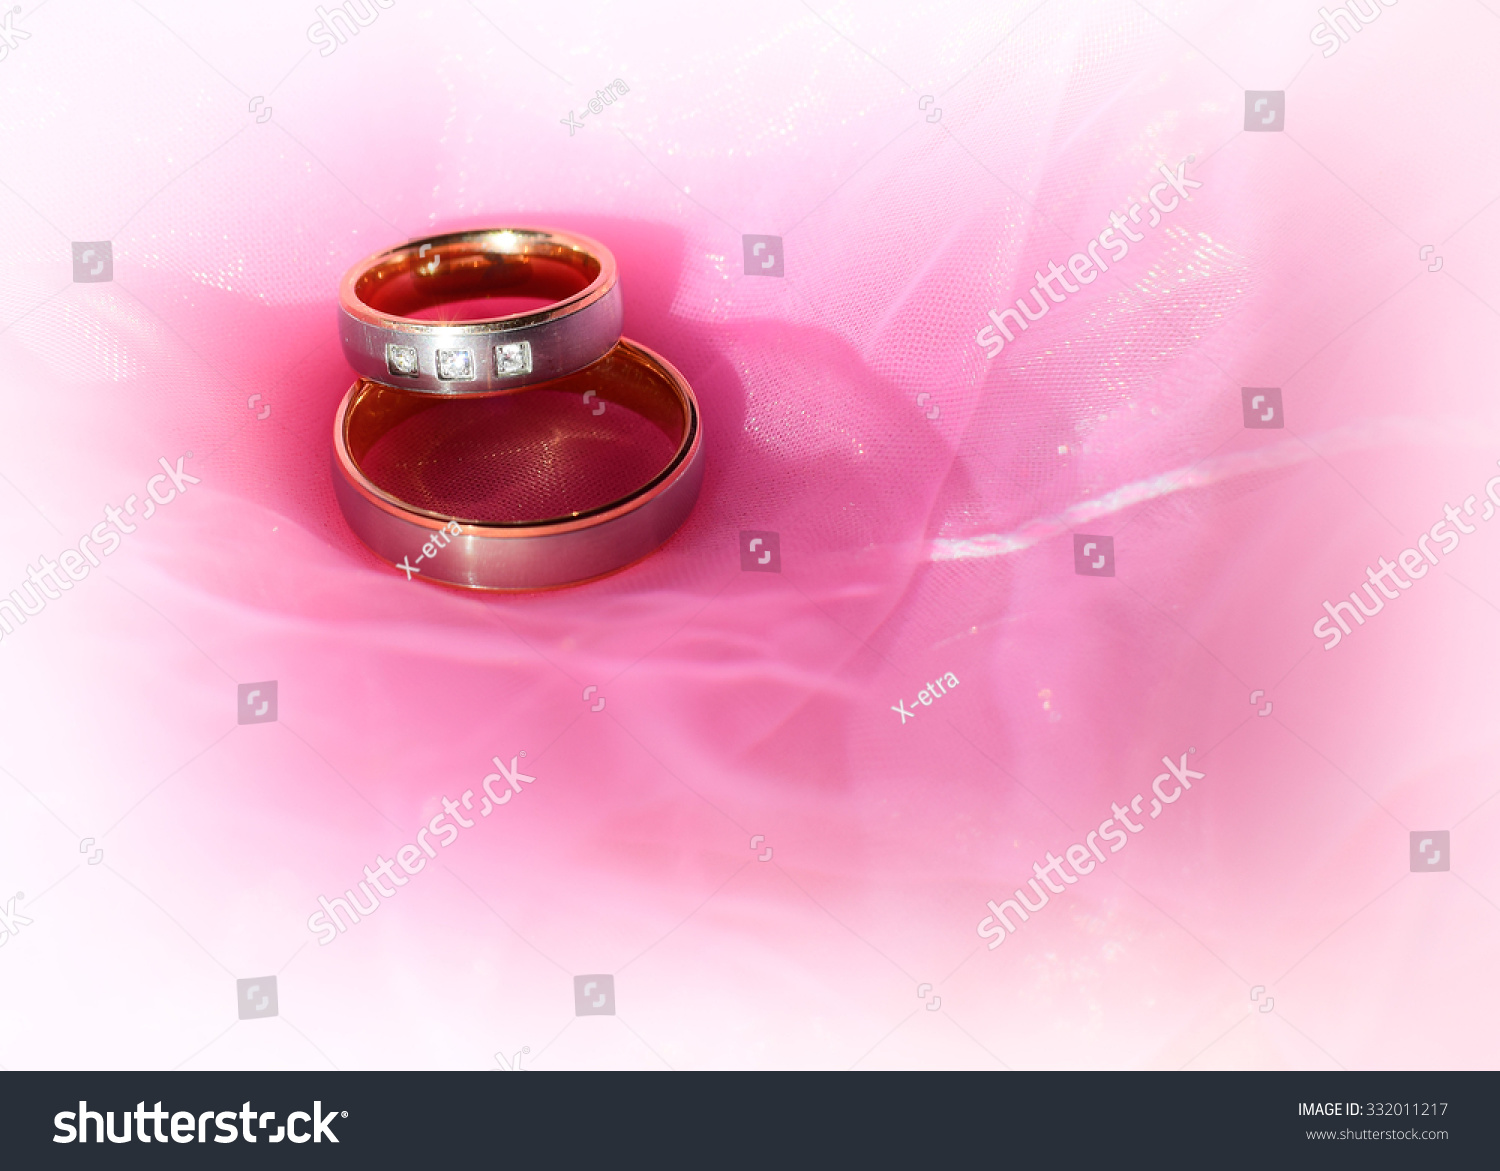 Two Nice Wedding Rings Love Concept Stock Photo (Royalty Free ...